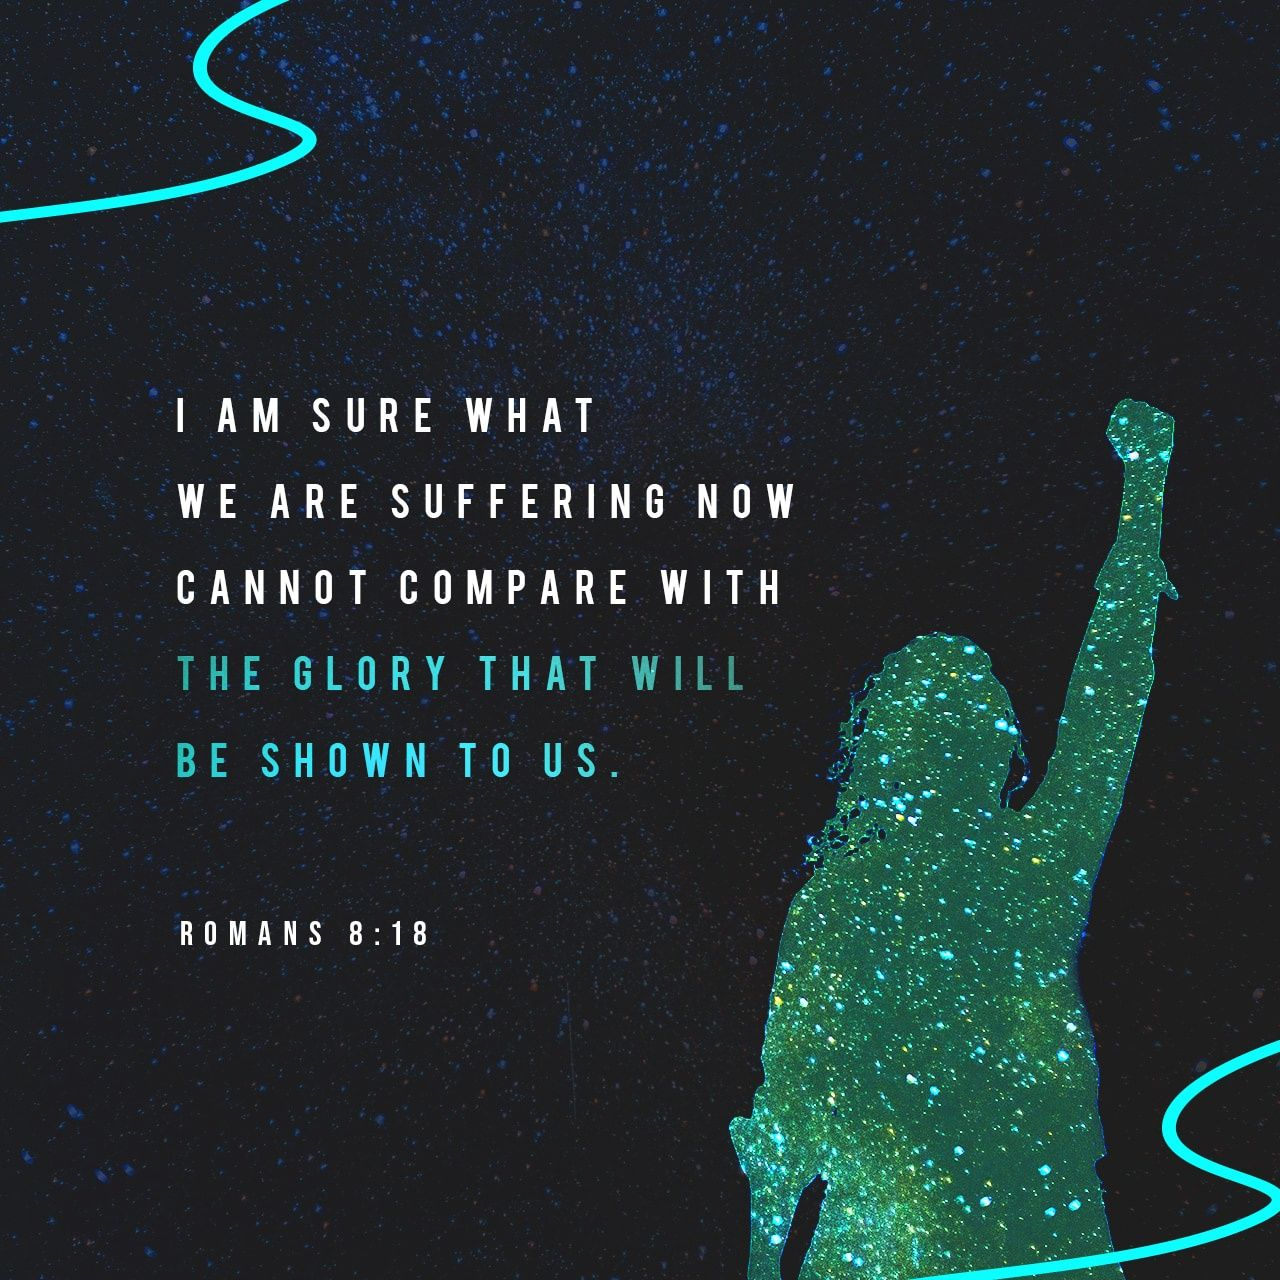 Romans 8:18 For I reckon that the sufferings of this present time are not worthy to be compared with the glory which shall be revealed in us.   King James Version (KJV)   Download The Bible App Now